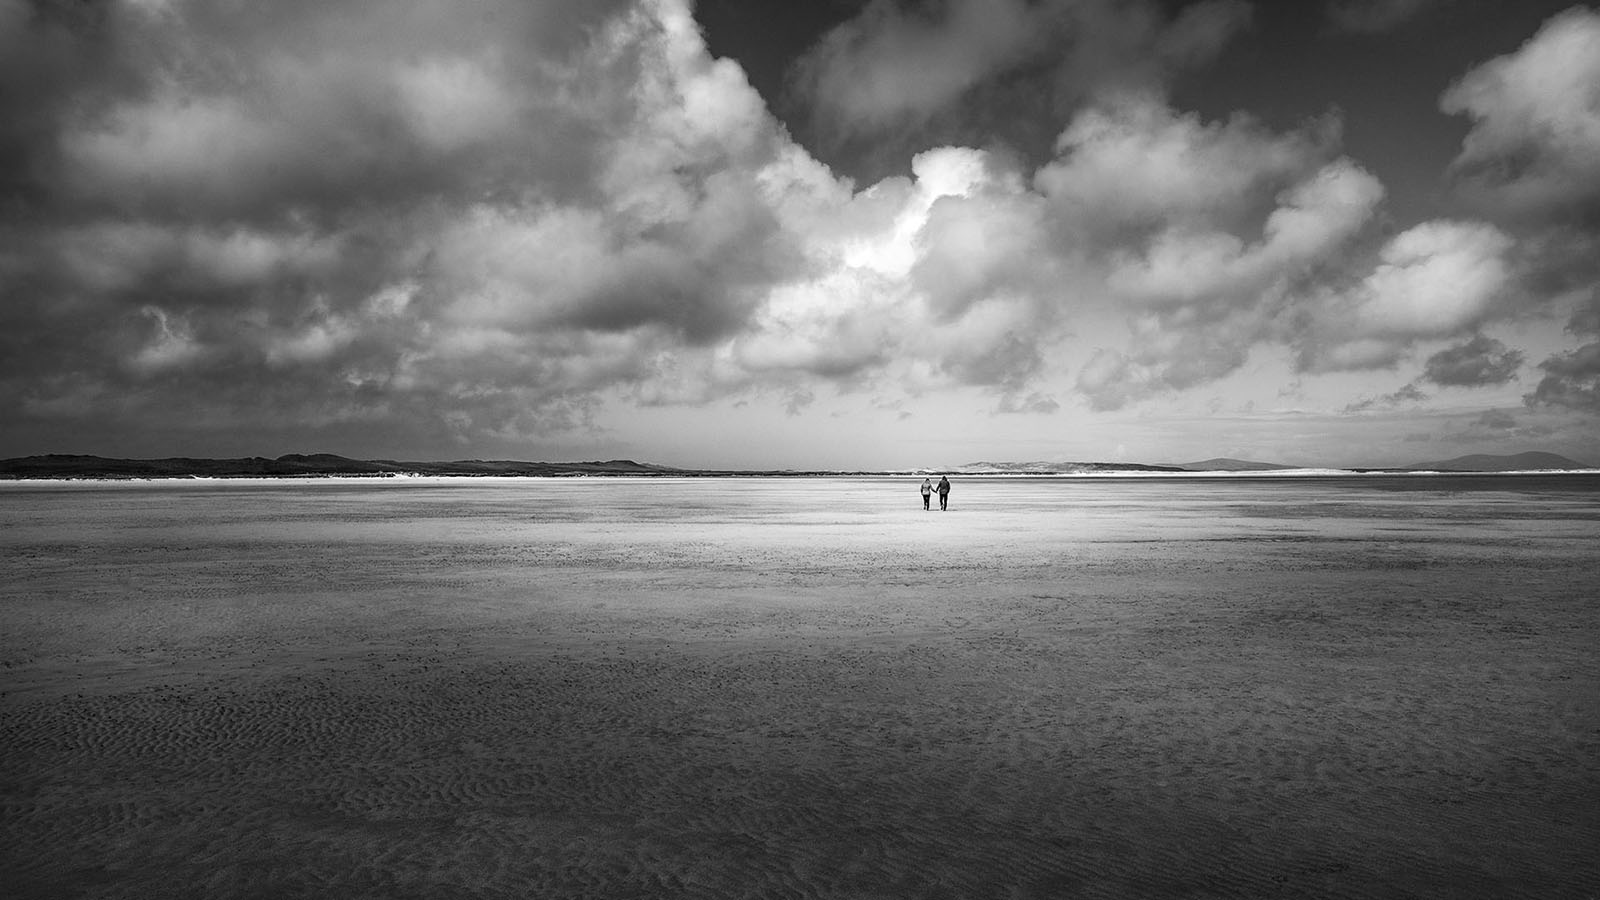 Scotland - Ilse of Uist - Black & White Fine Art Photography Series